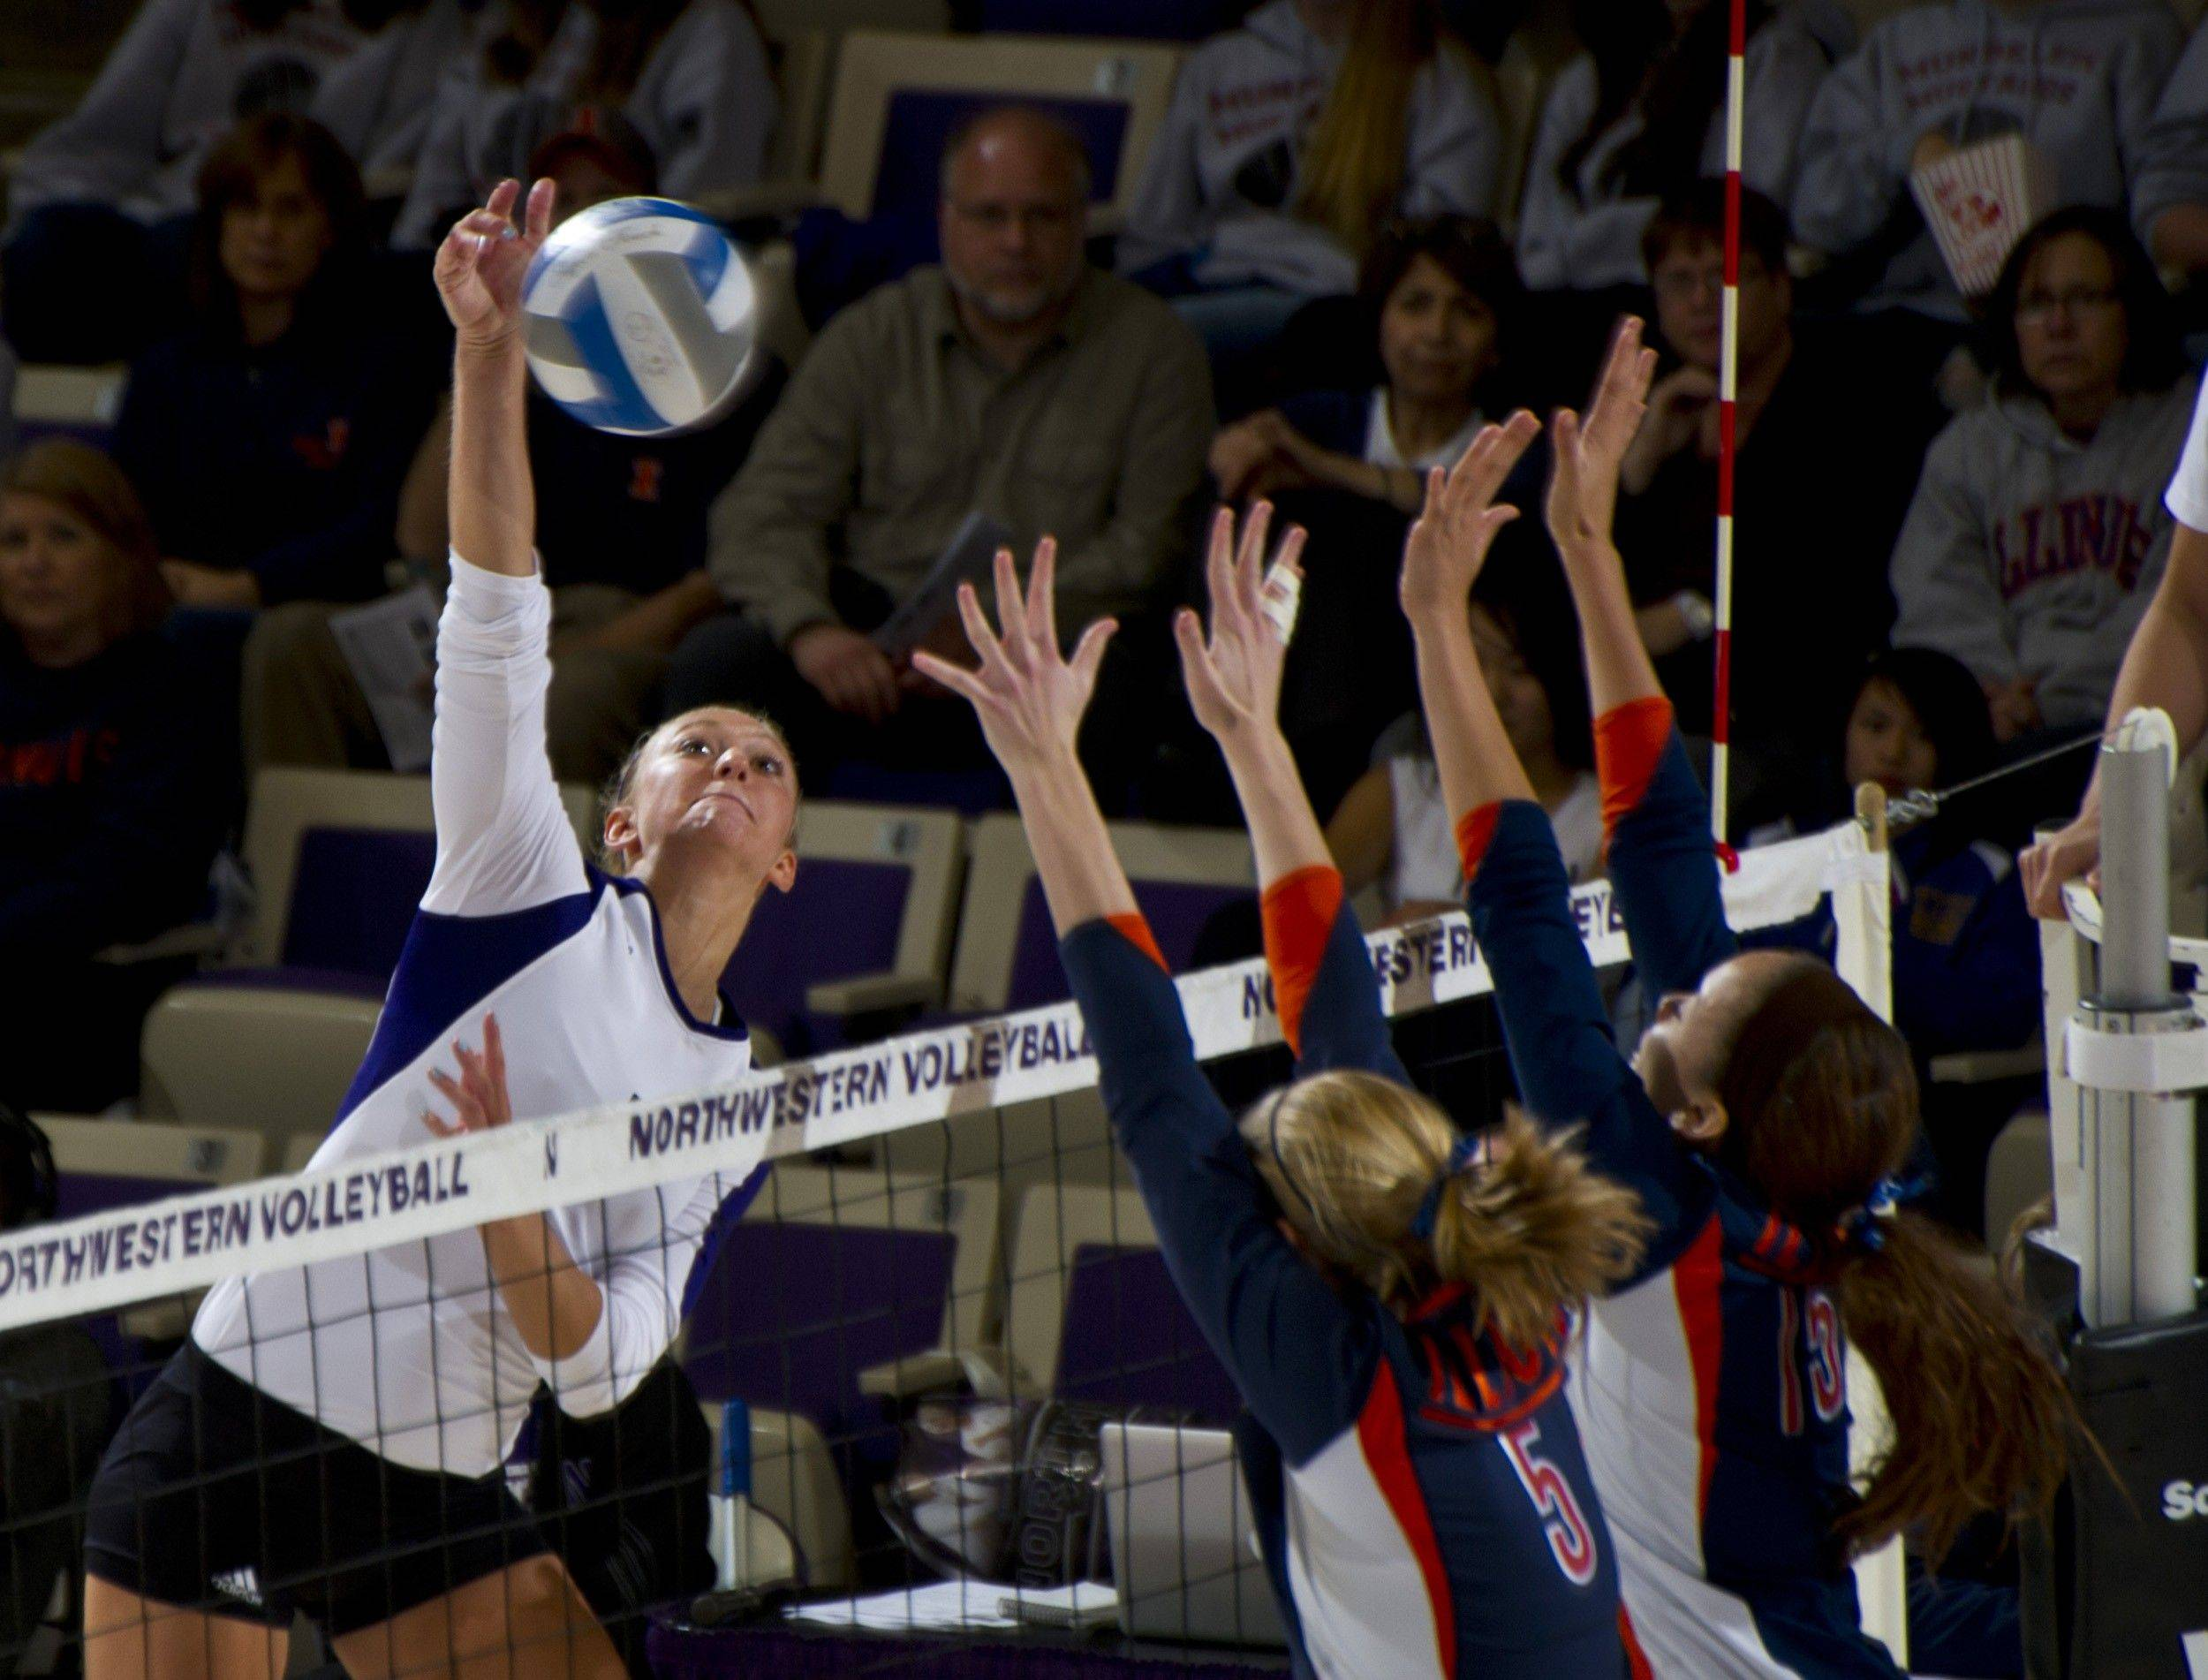 Stephanie Holthus, a Northwestern outside hitter, slams home a shot against the Illini in a match this fall. Holthus, a sophomore who played at Burlington Central, earned a spot on the All Big Ten Volleyball Team, which was announced Tuesday.